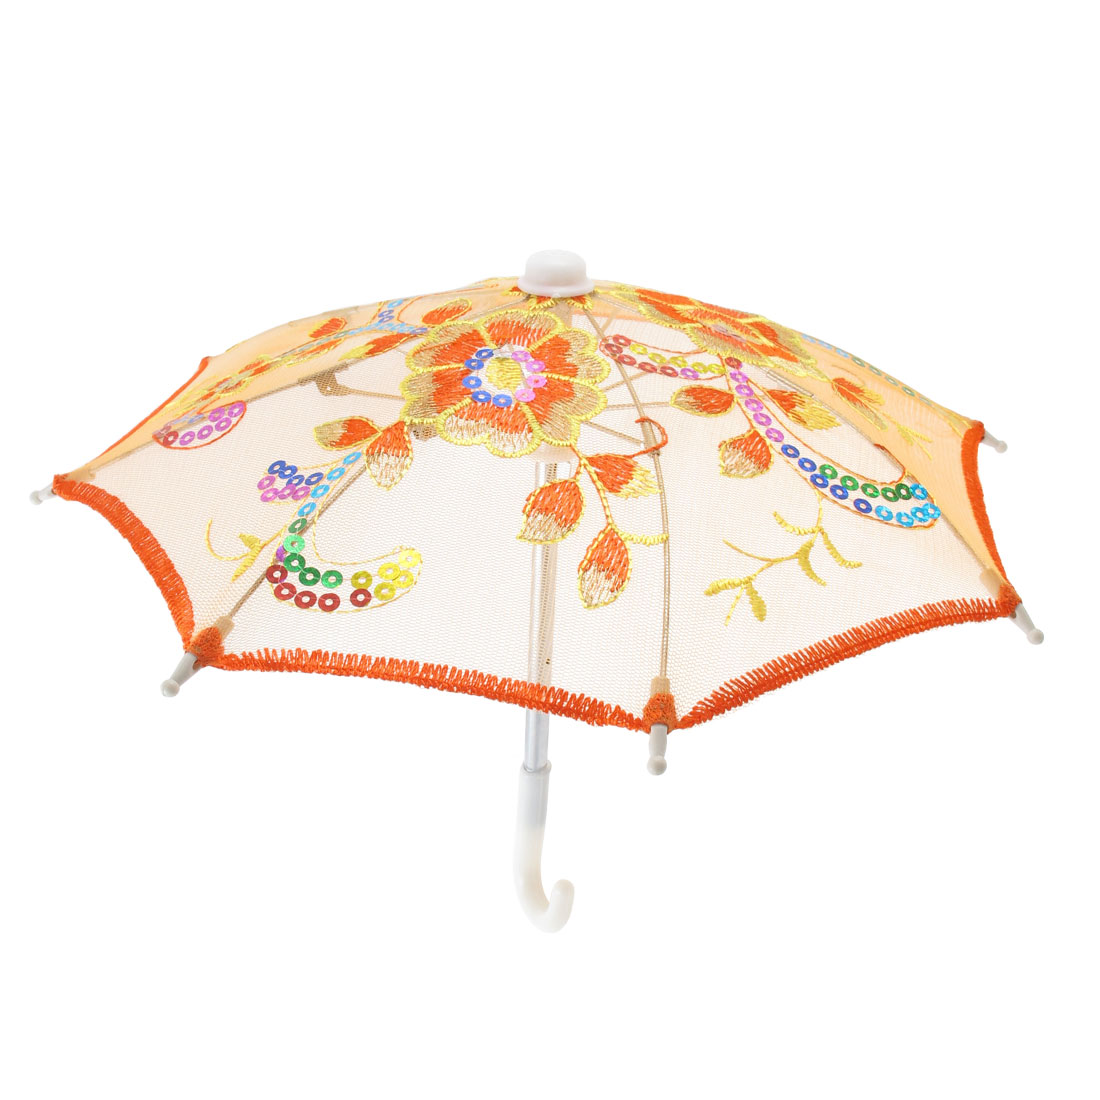 UXCELL Yellow Embroider Flower Pattern Foldable Mini Lace Umbrella Parasol For Child(China (Mainland))